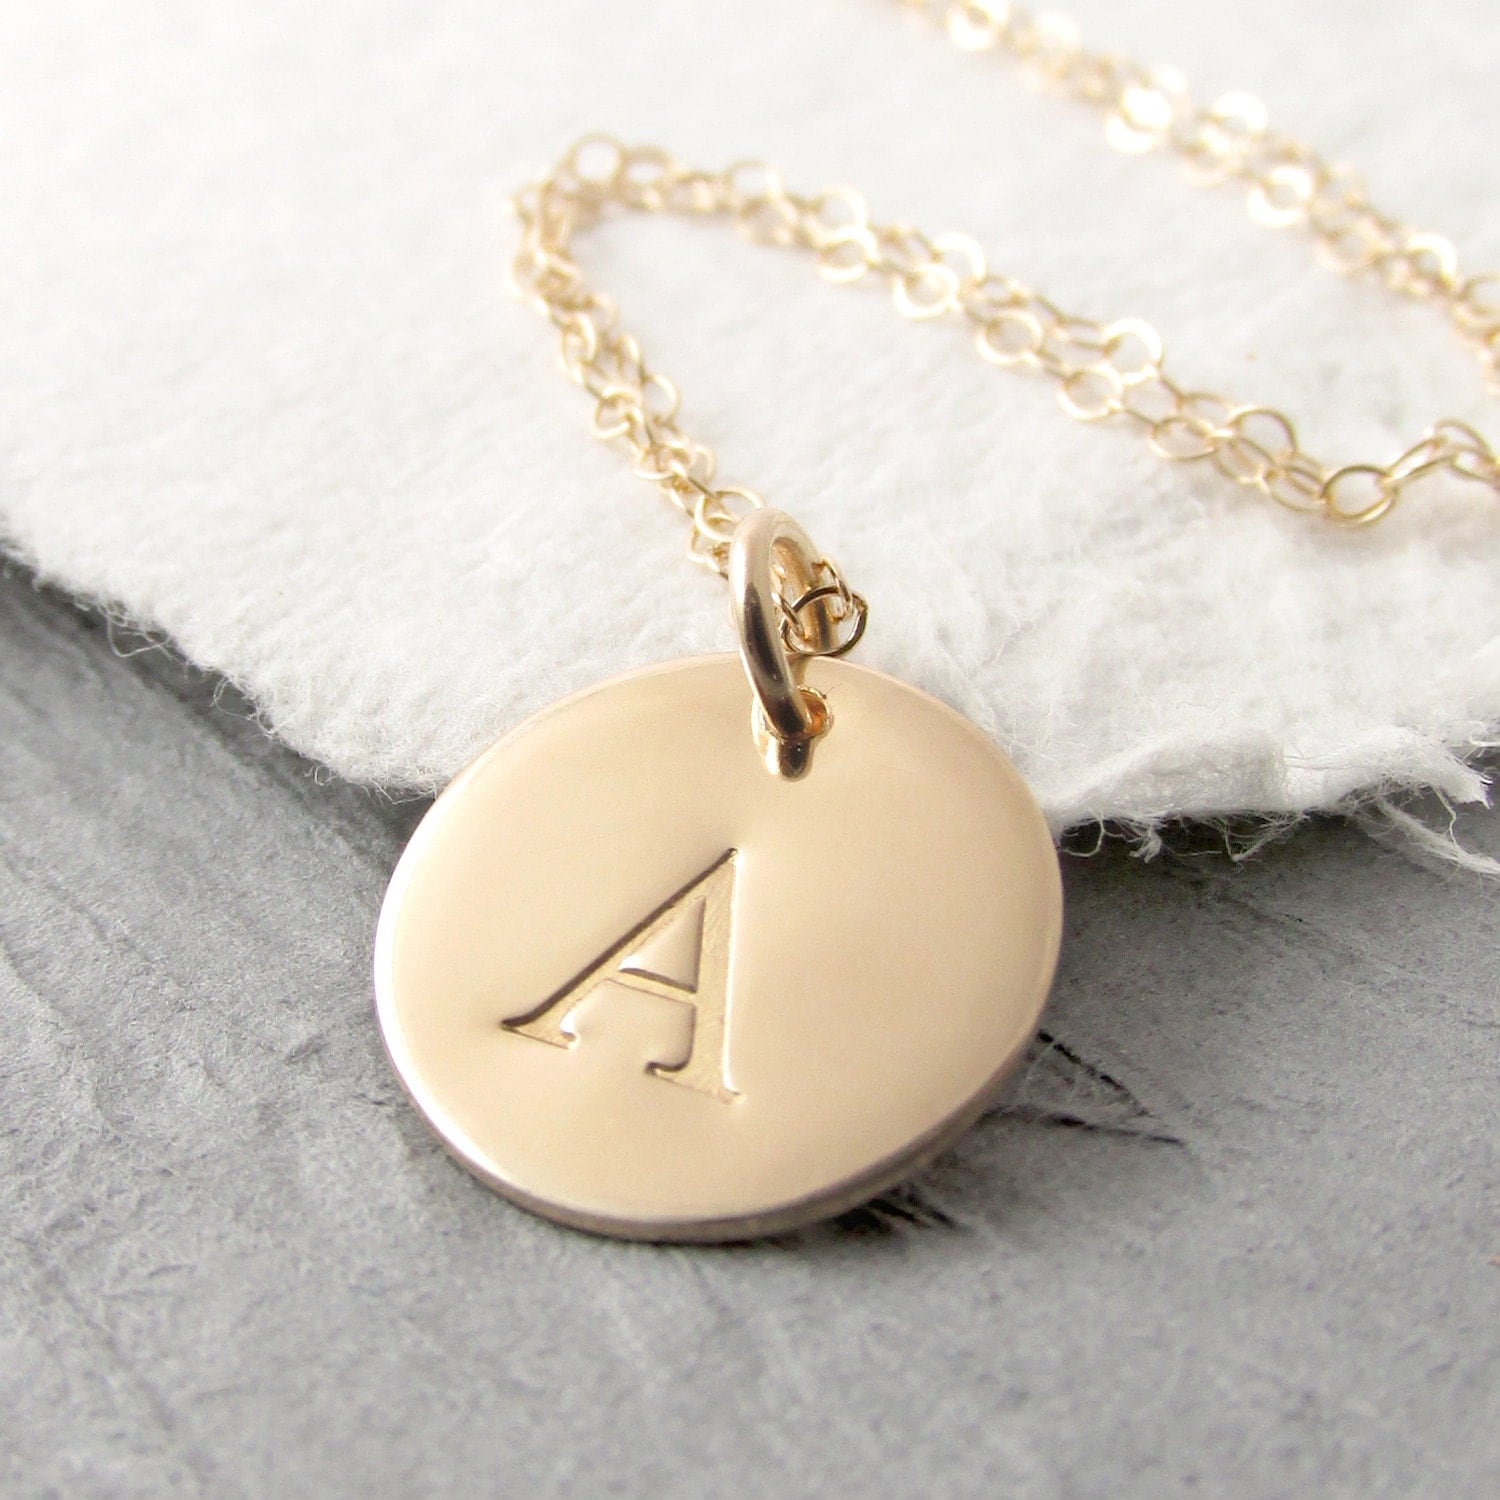 initial necklace gold 14k gold pendant necklace solid gold